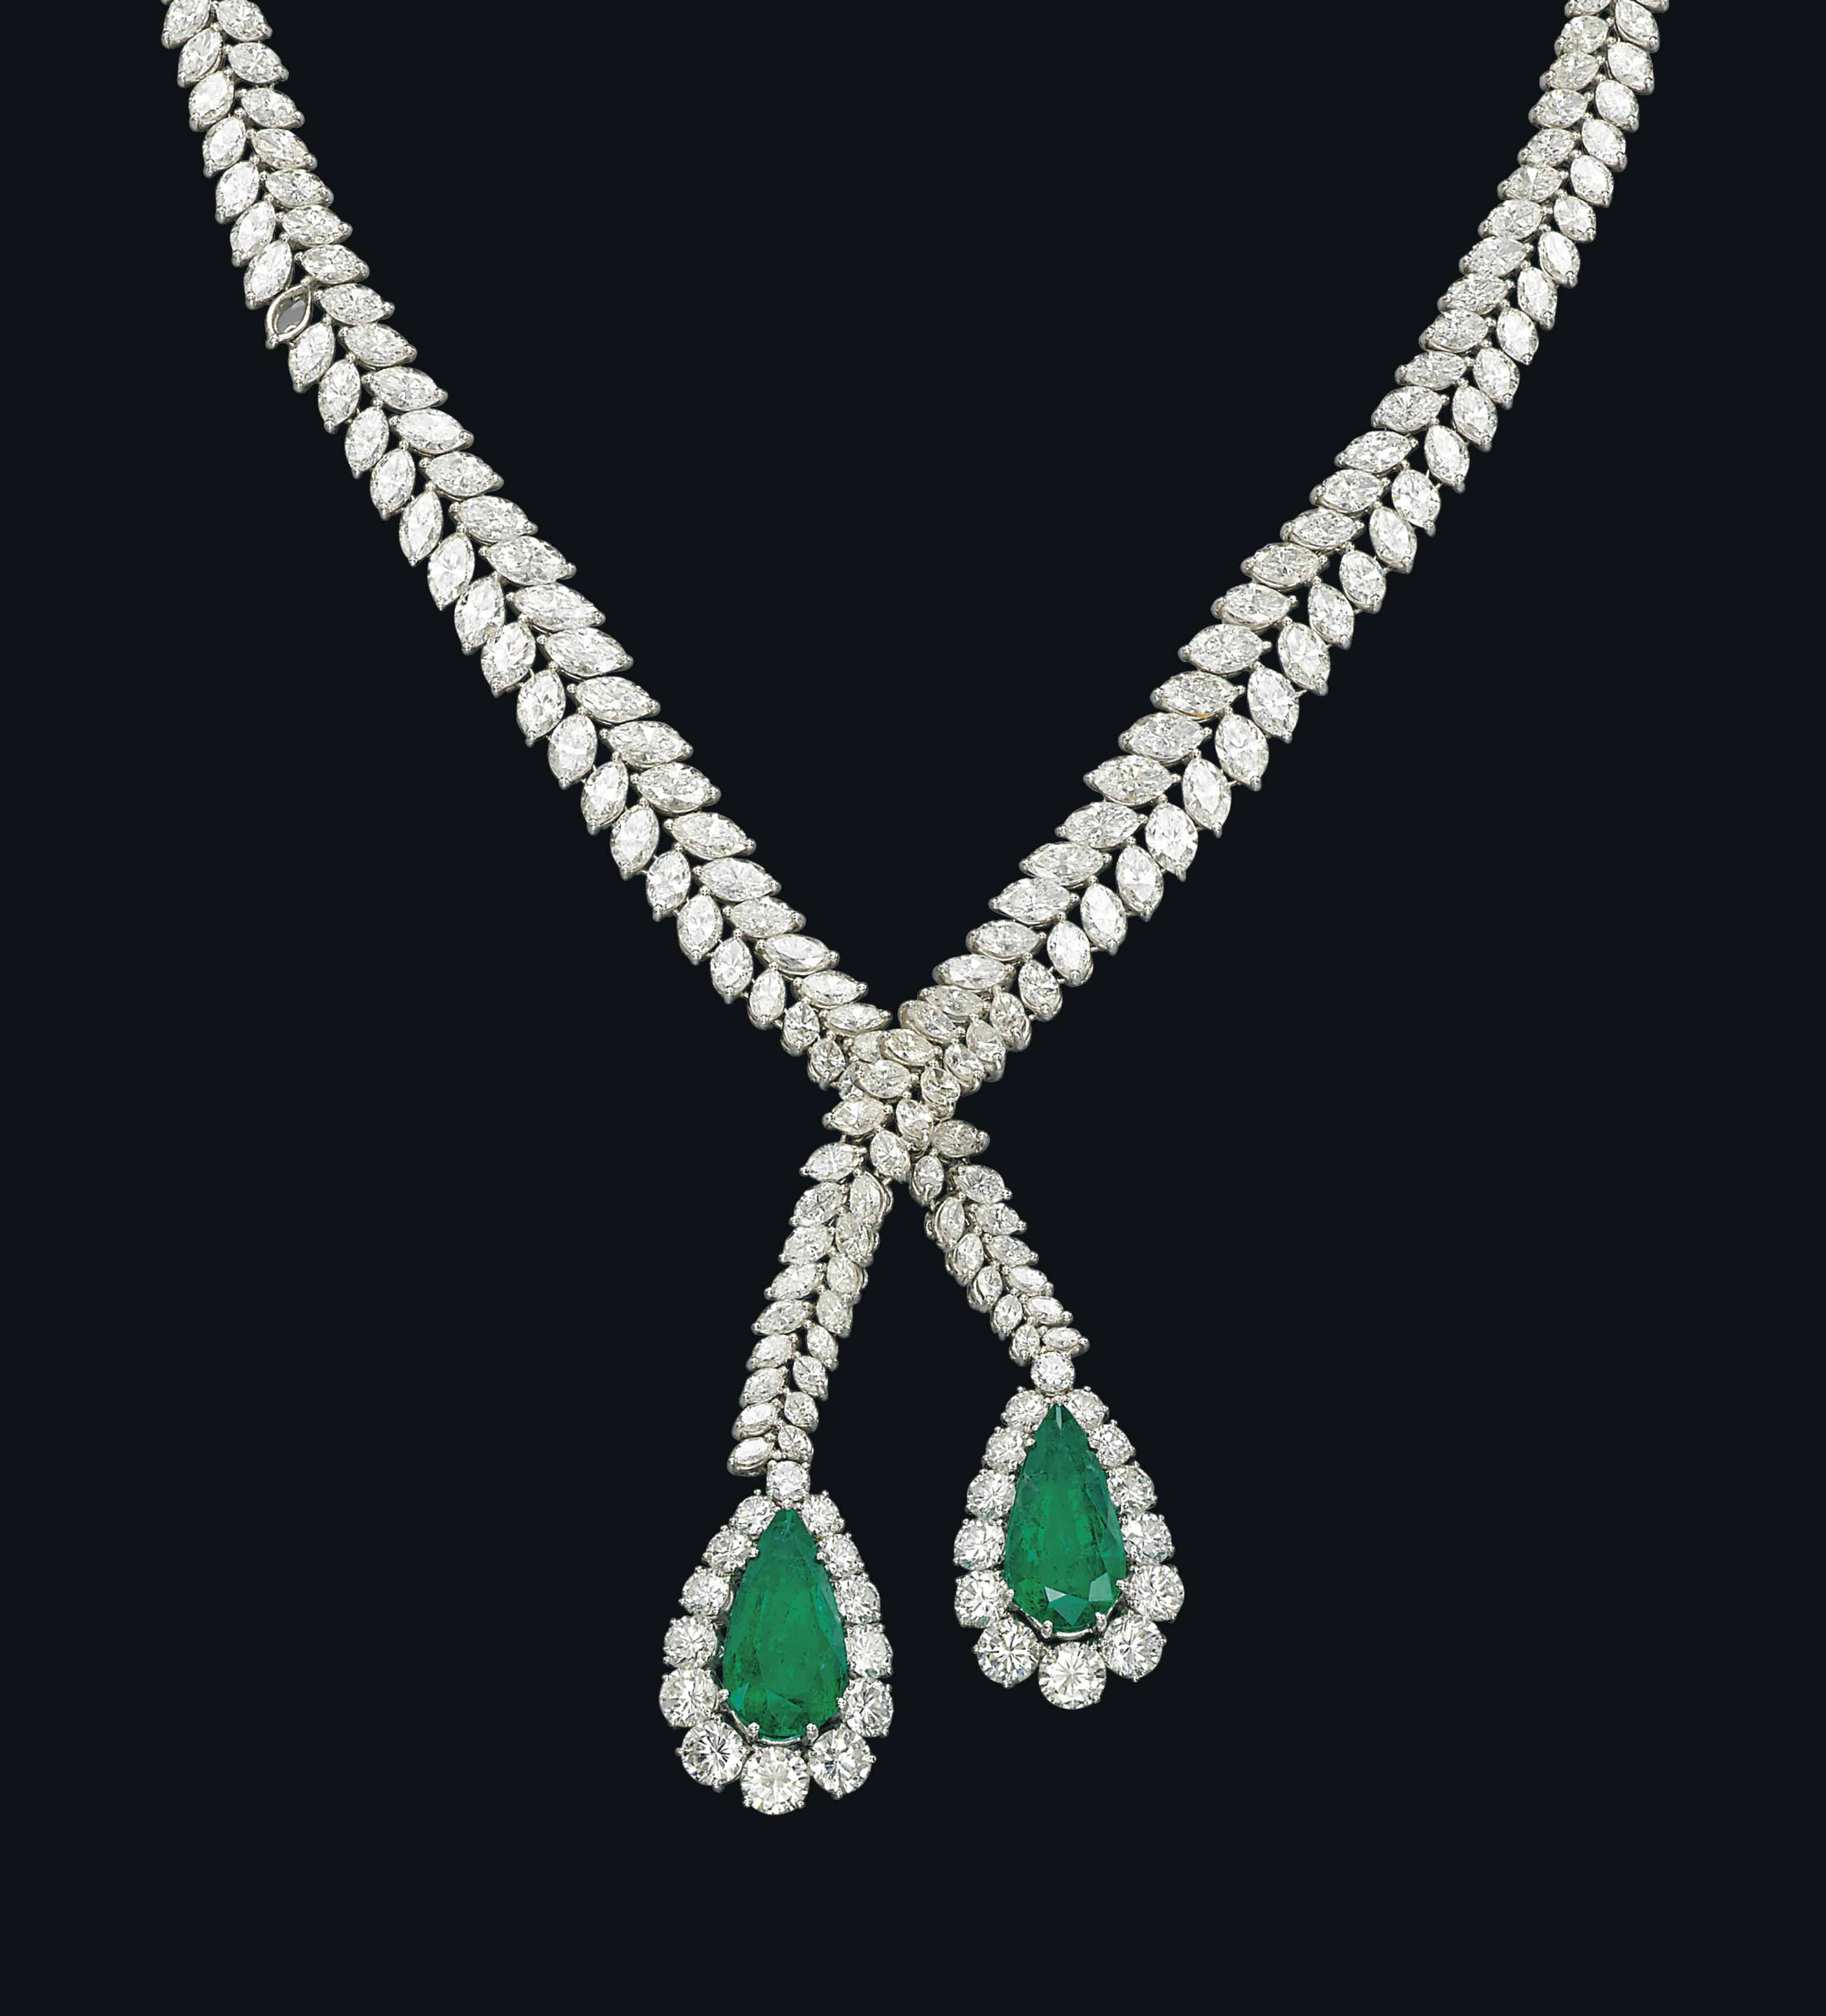 AN EMERALD AND DIAMOND NECKLACE, BY FARAONE